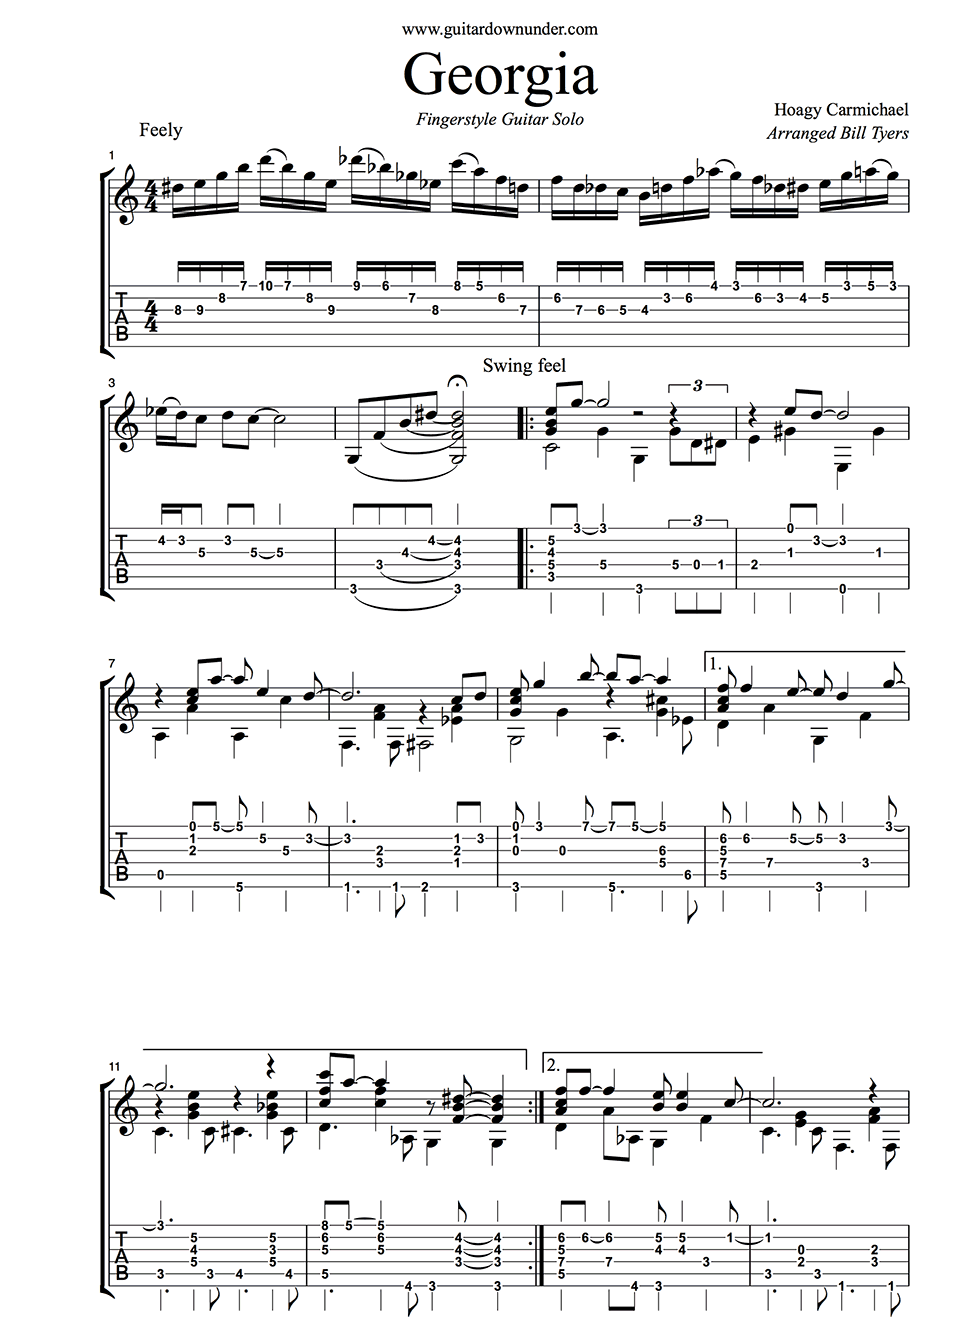 Georgia by hoagy carmichael easy fingerstyle guitar arrangement an error occurred hexwebz Image collections